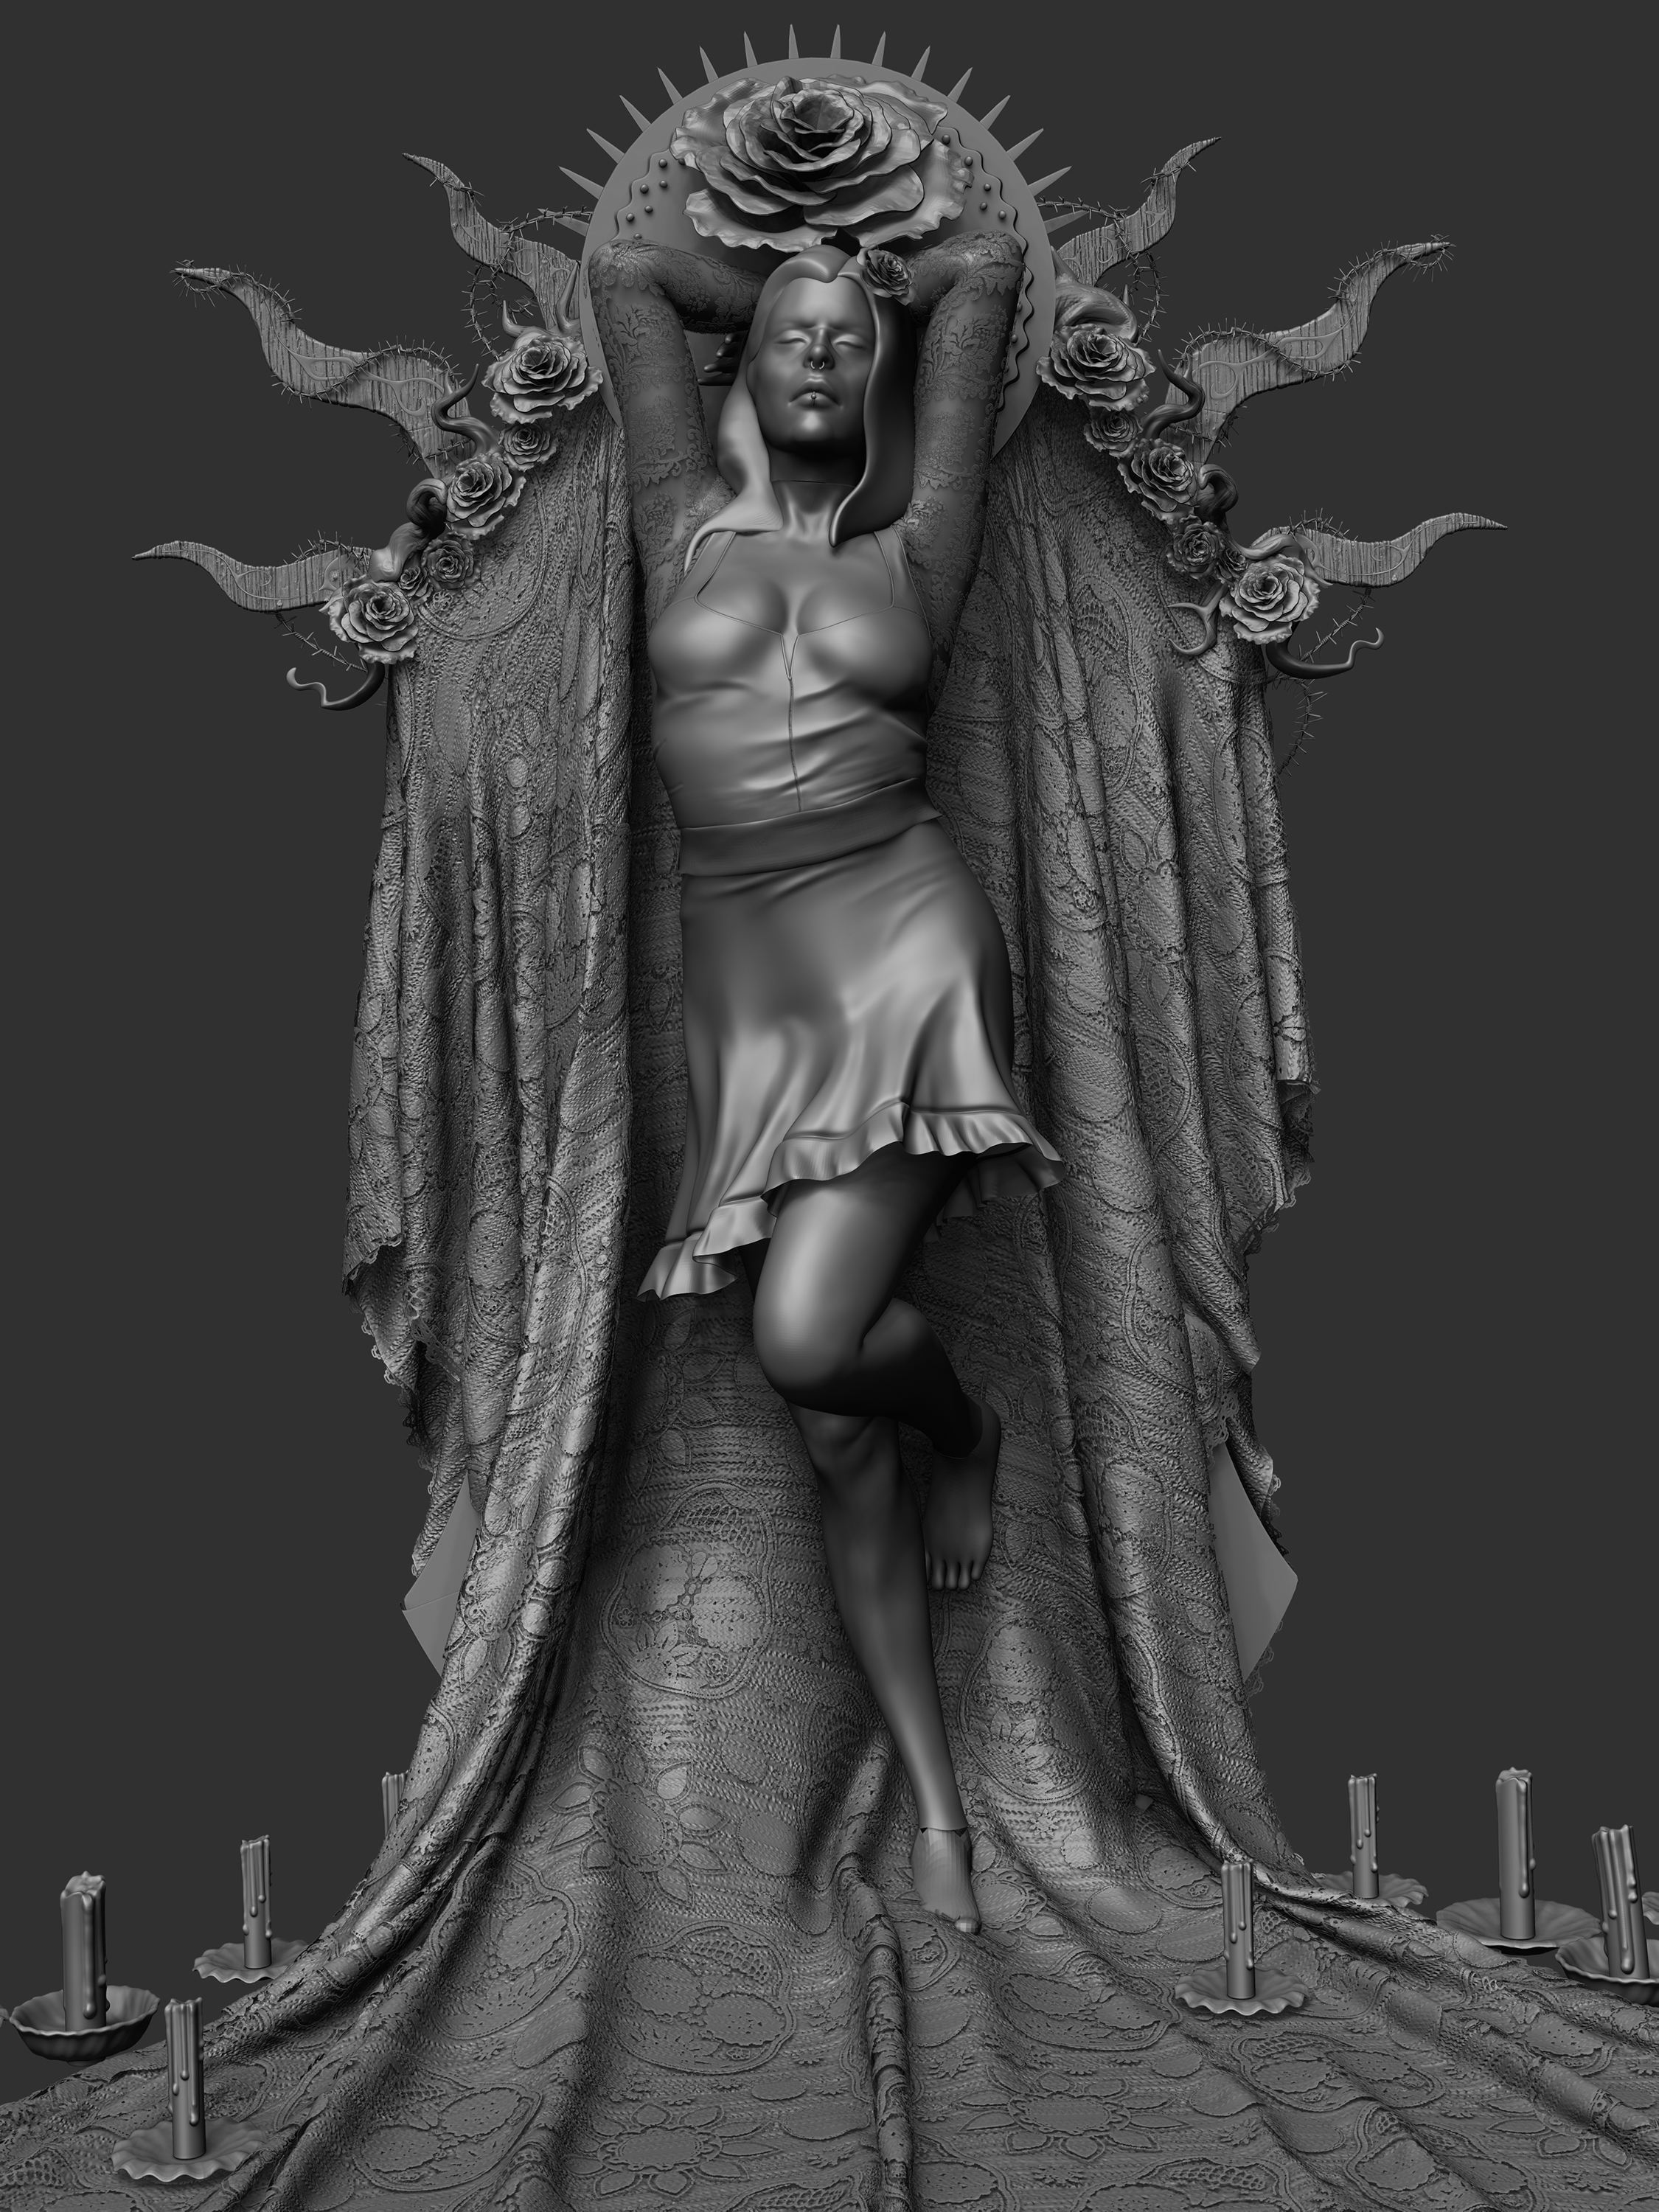 BPR render of where the sculpt is at. Still a long road ahead to finish this one off!